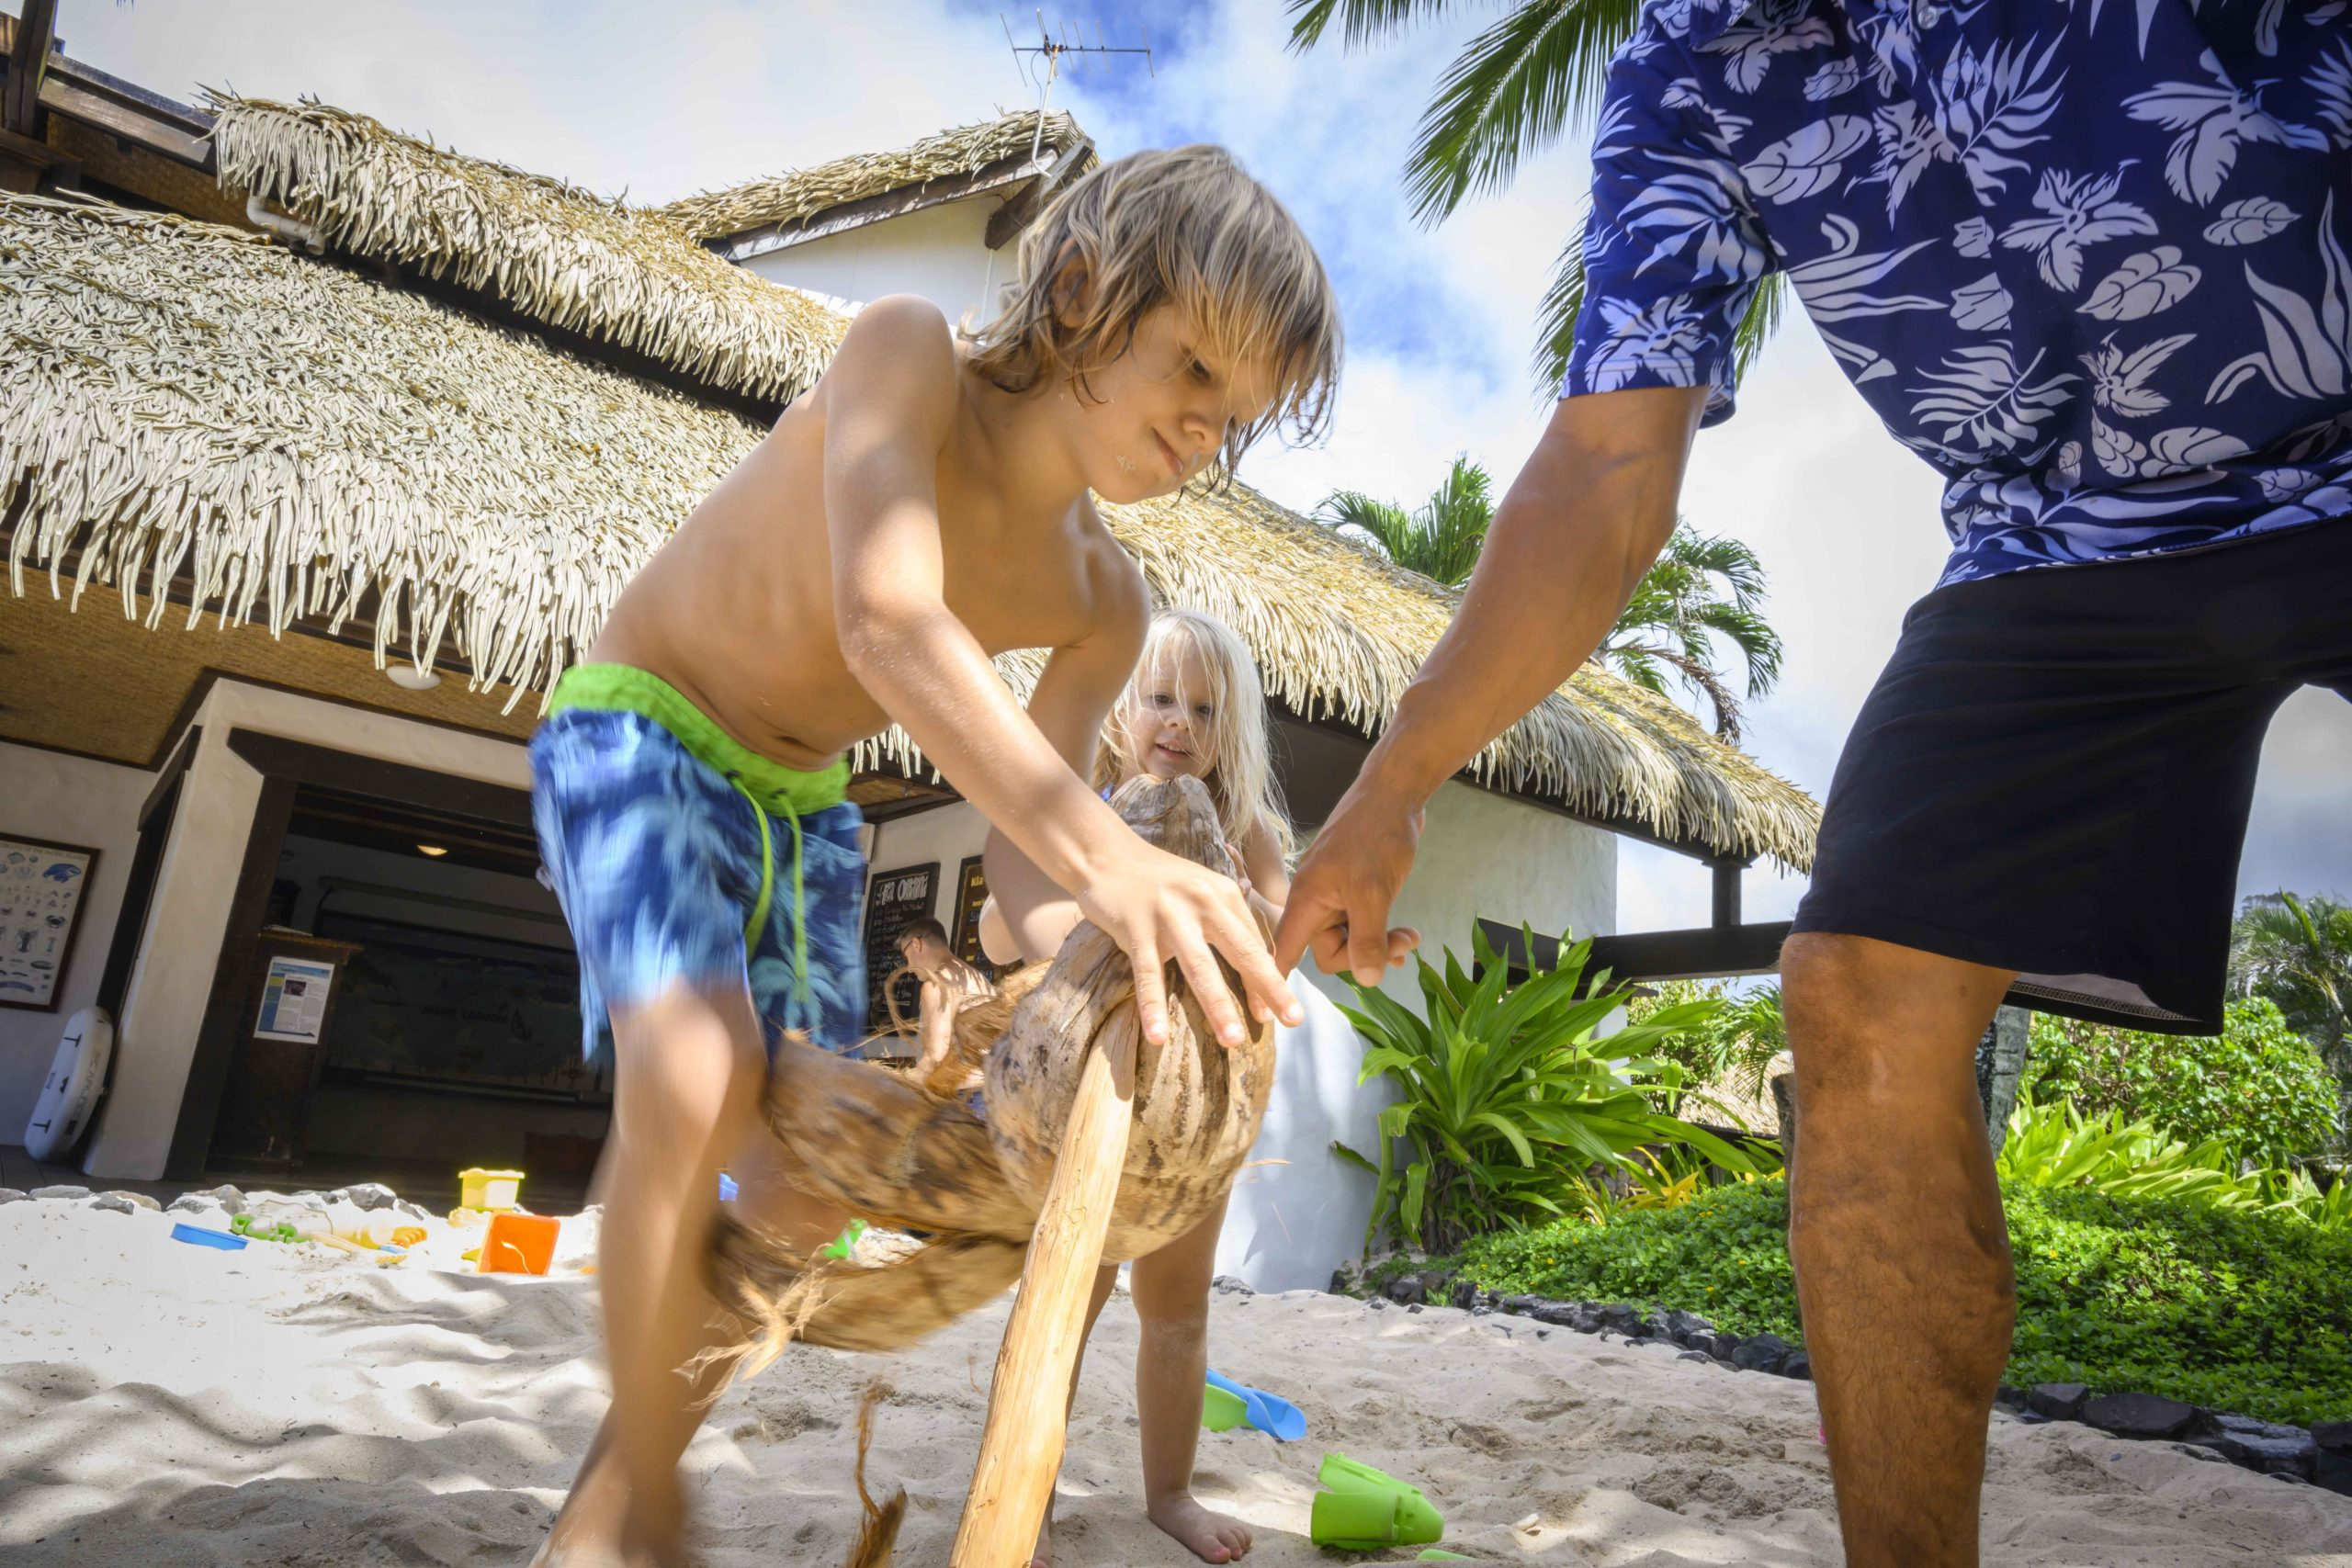 A supervised coconut husking performed by a young boy with the help of the Resort Attendant